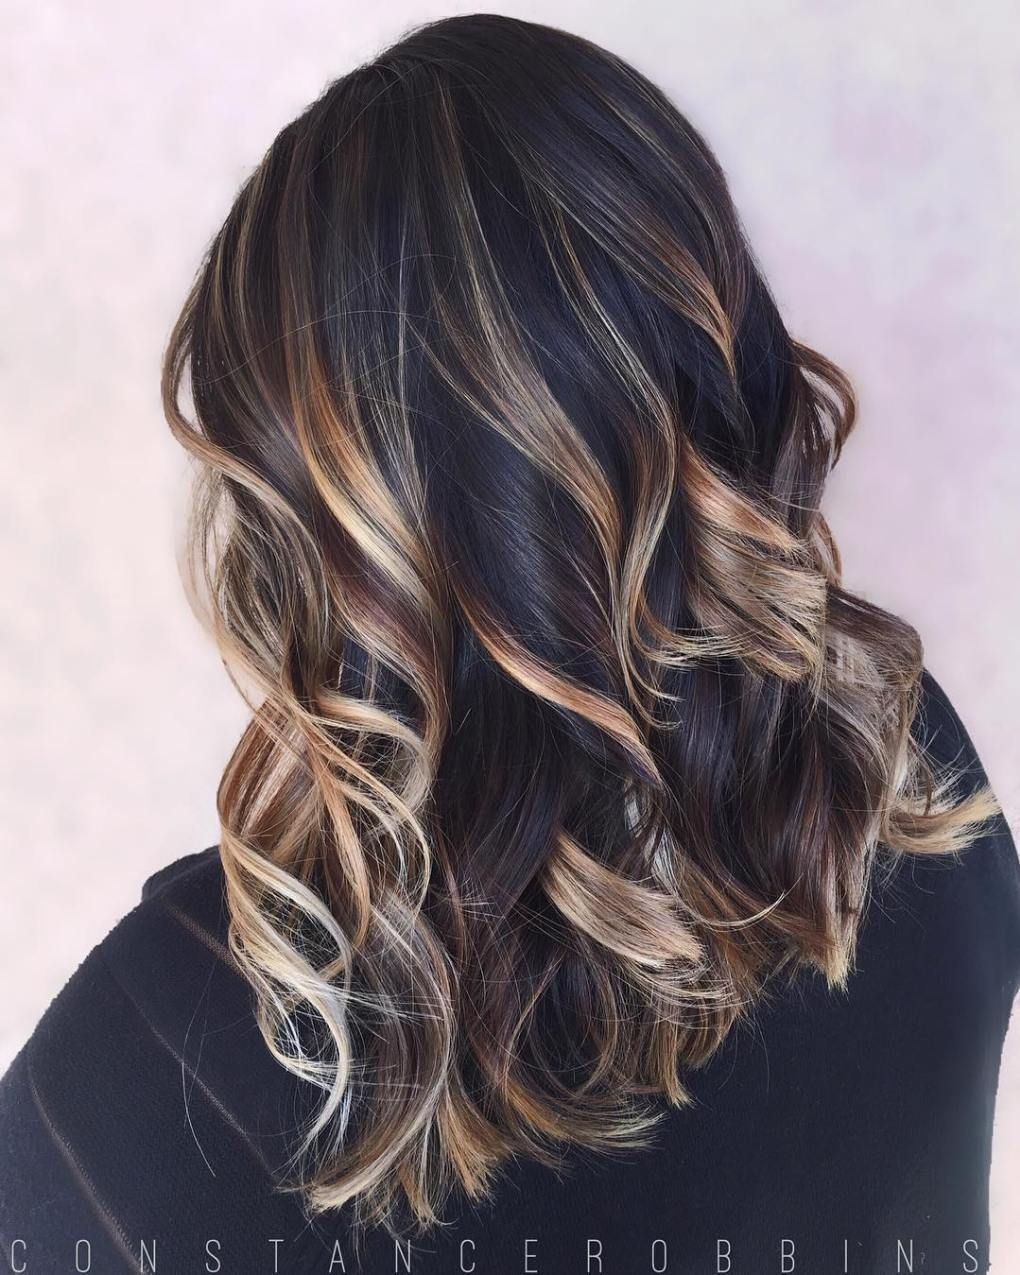 Hairstyles black hair with blonde highlights 8